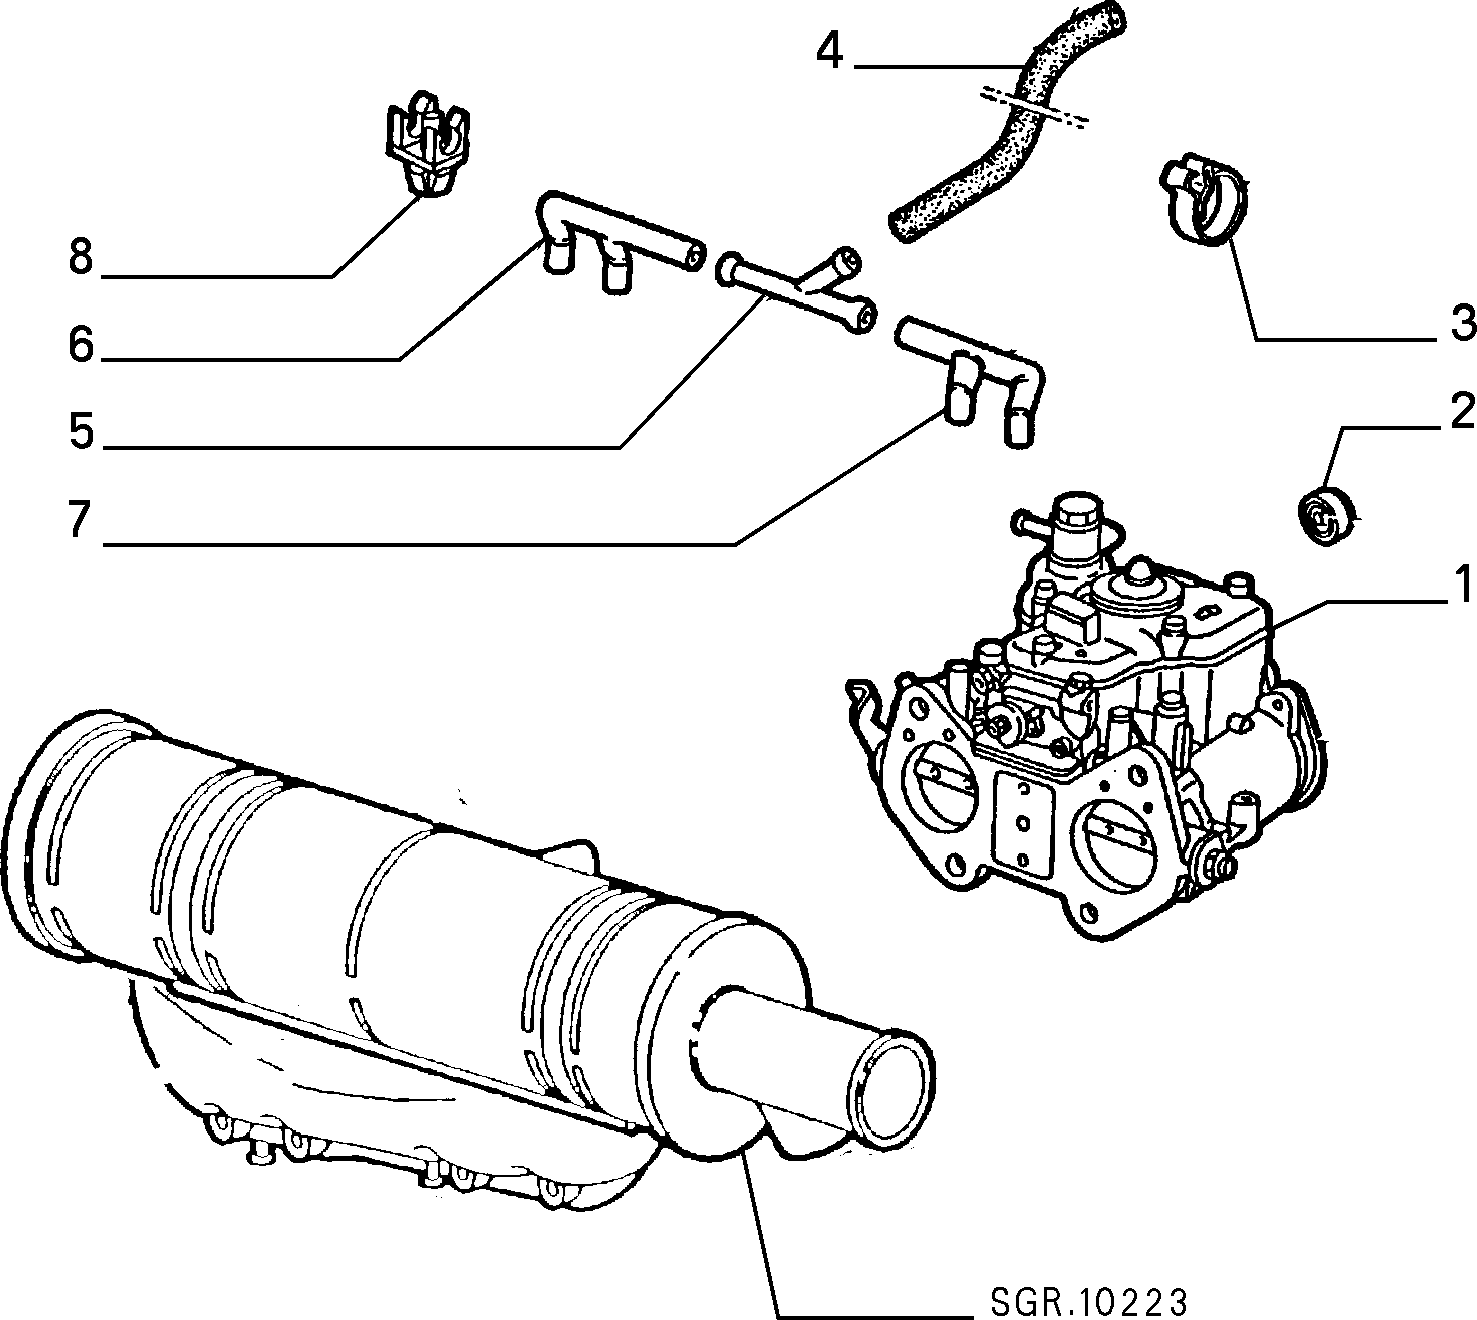 Catalogue Alfa Romeo Spider Europa Fl90 1990 1993 Fuel Injection Diagram M1